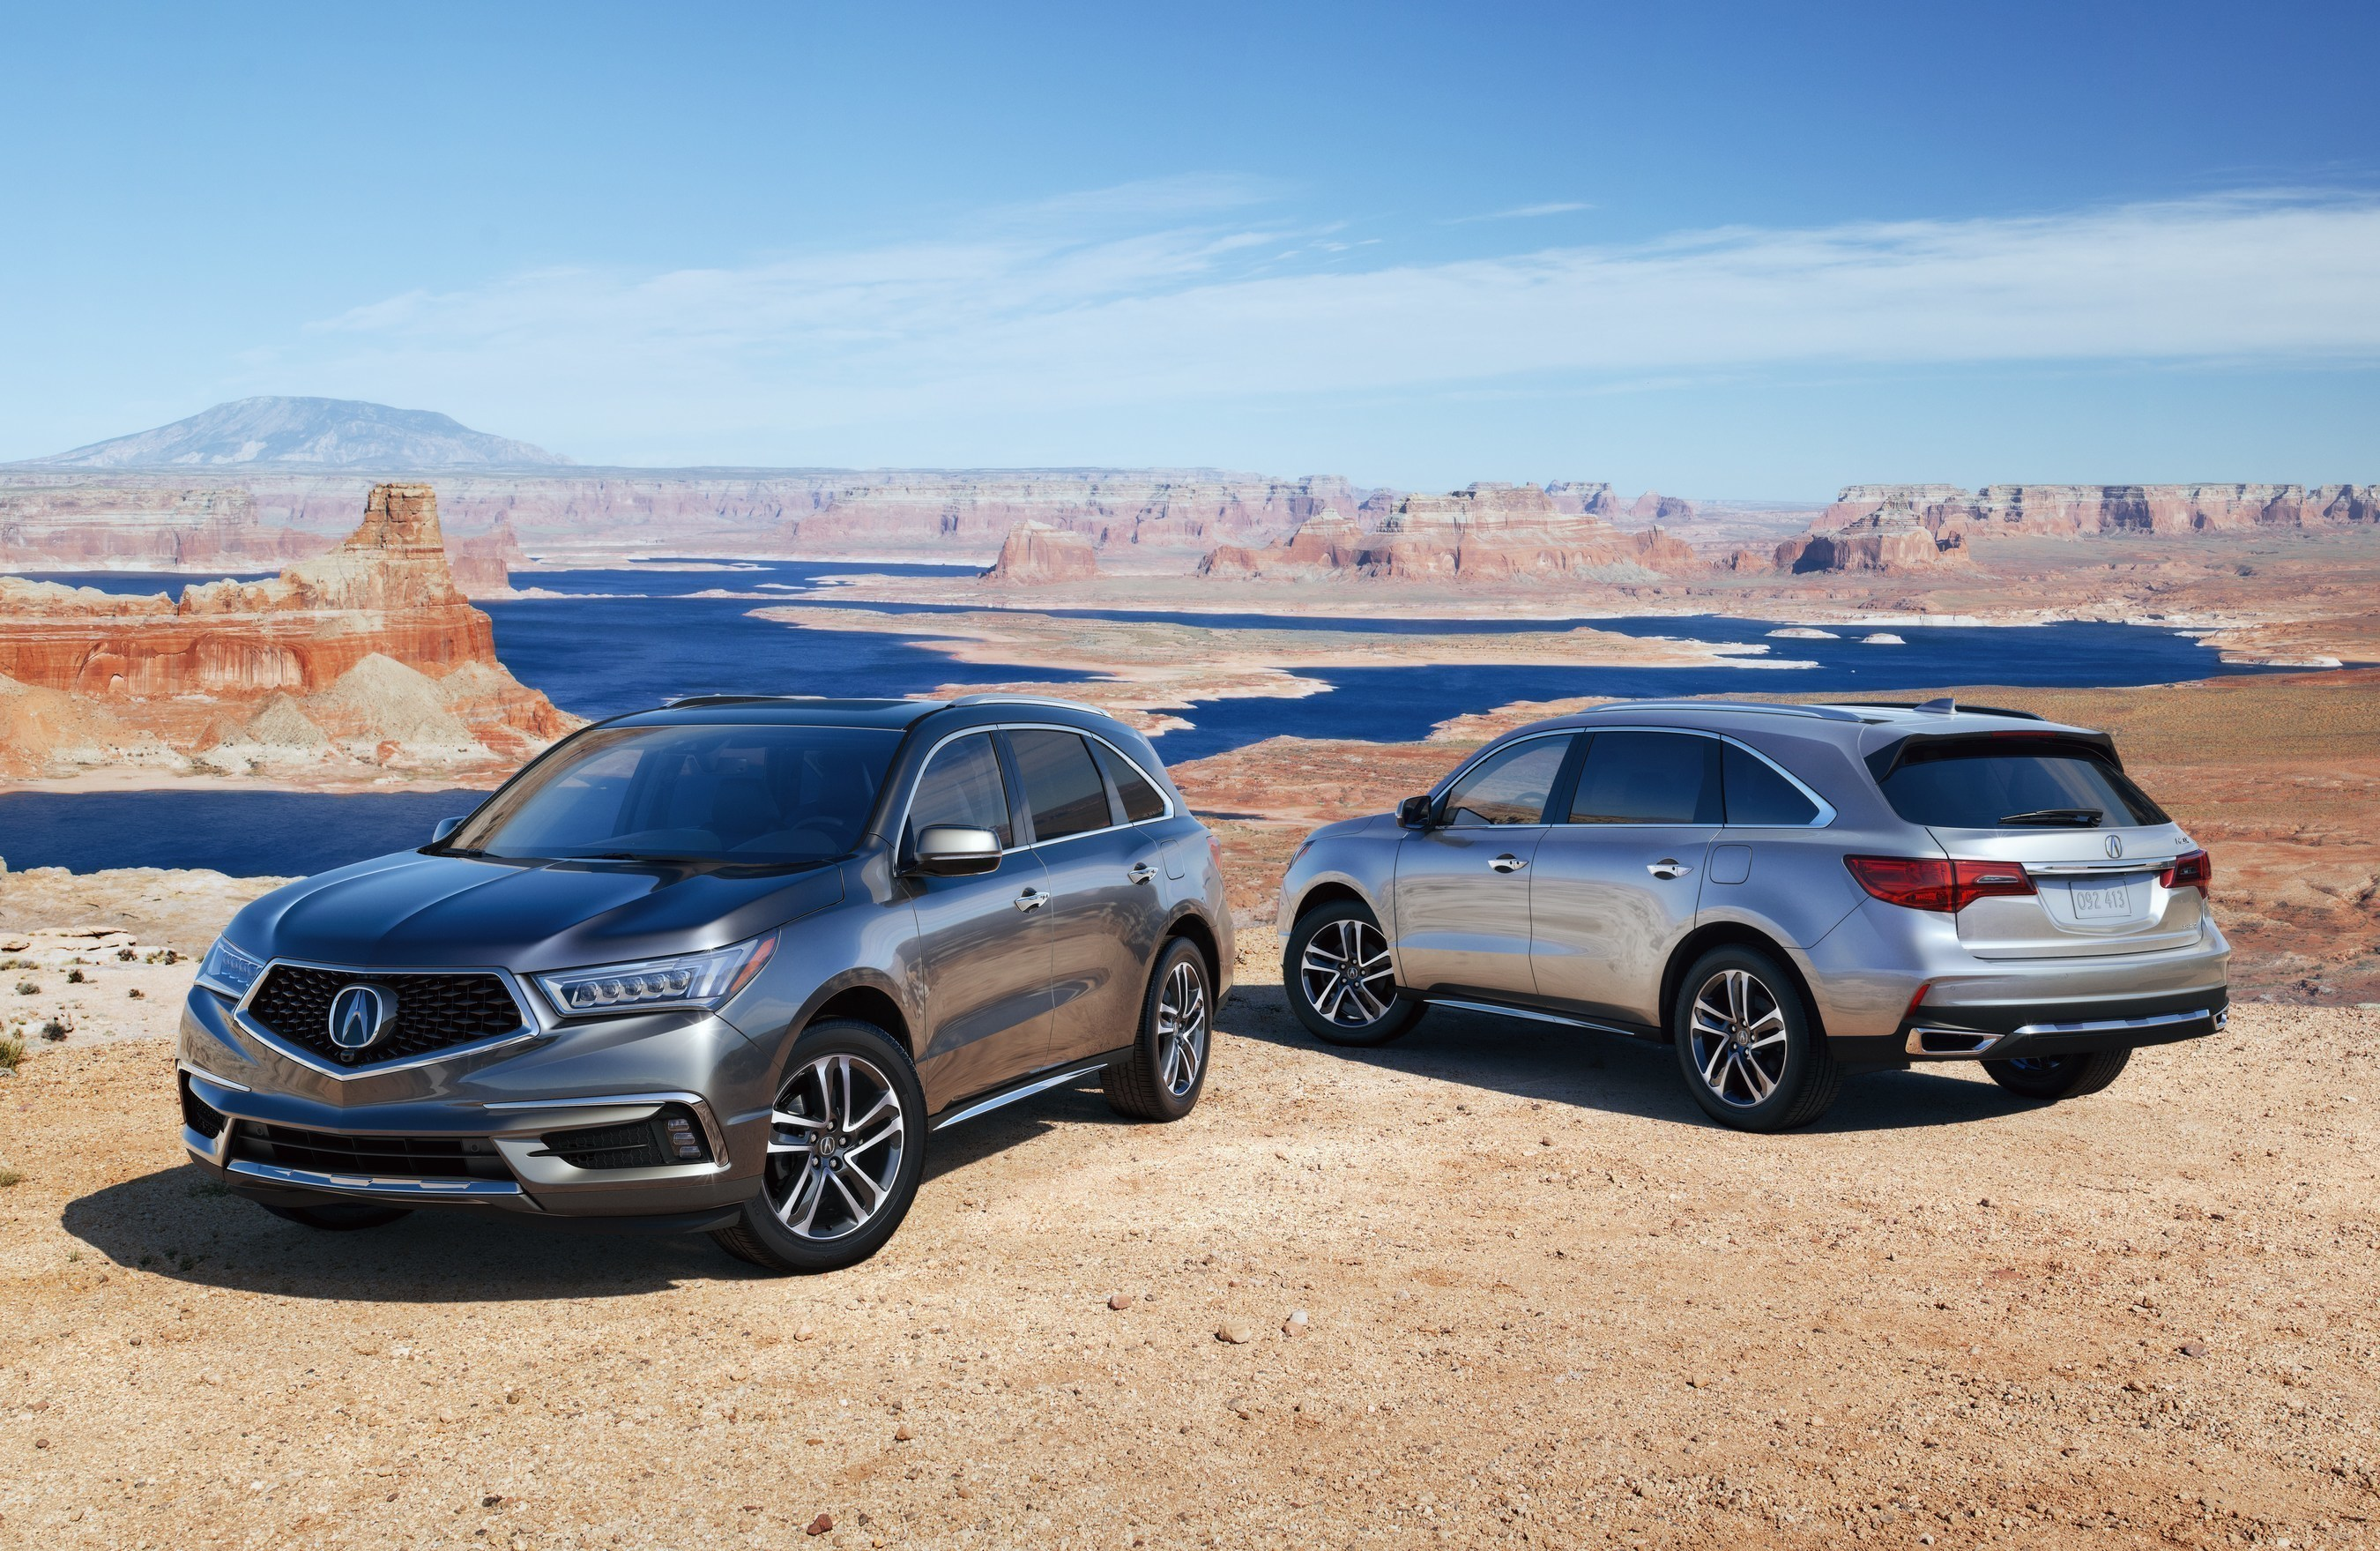 Refreshed 2017 Acura Mdx Launches With Bold New Styling Premium Features And Standard Acurawatch